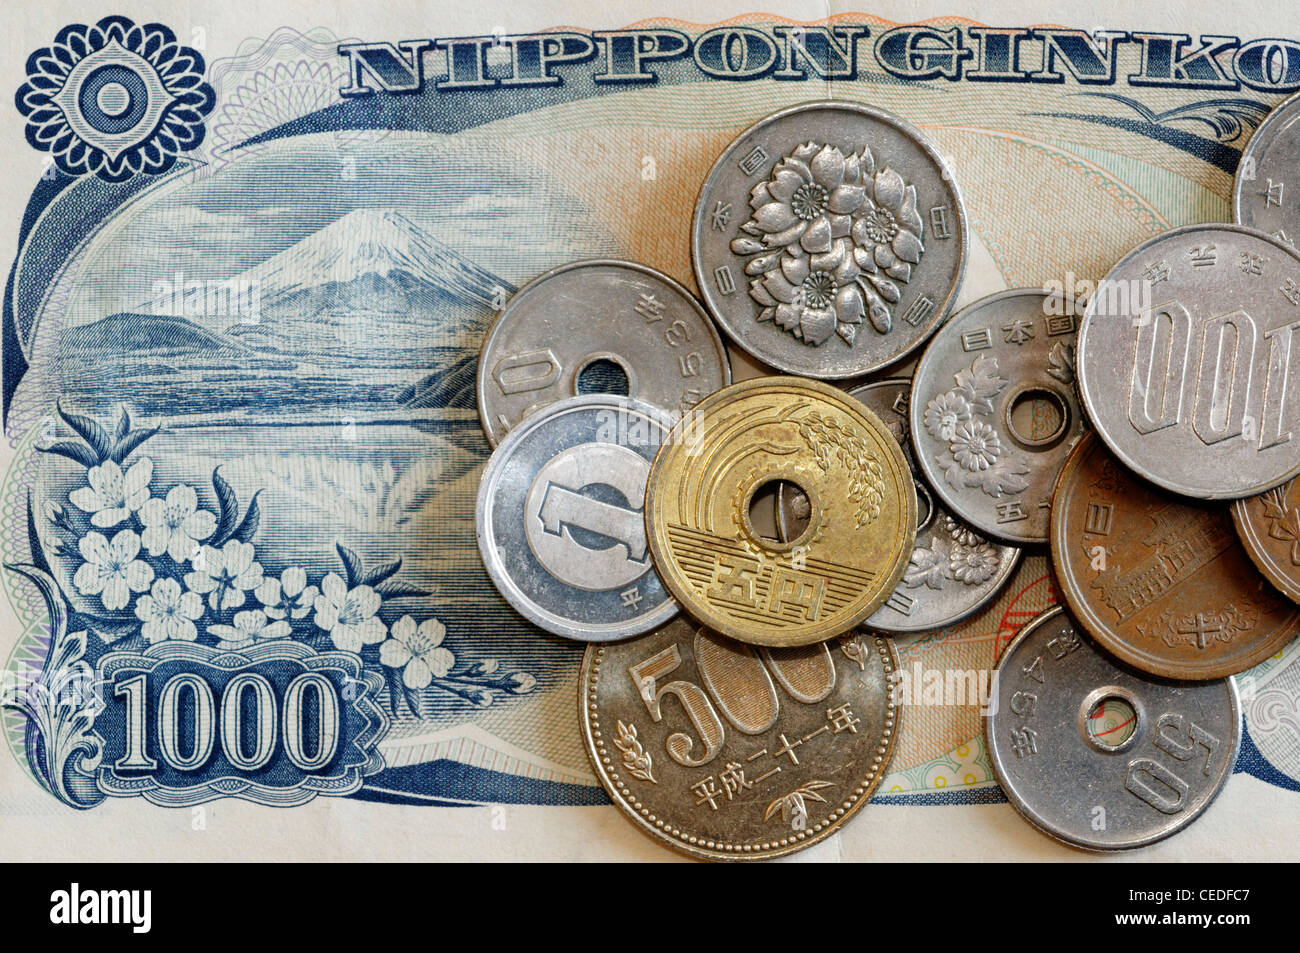 Japanese yen banknotes and coins - Stock Image